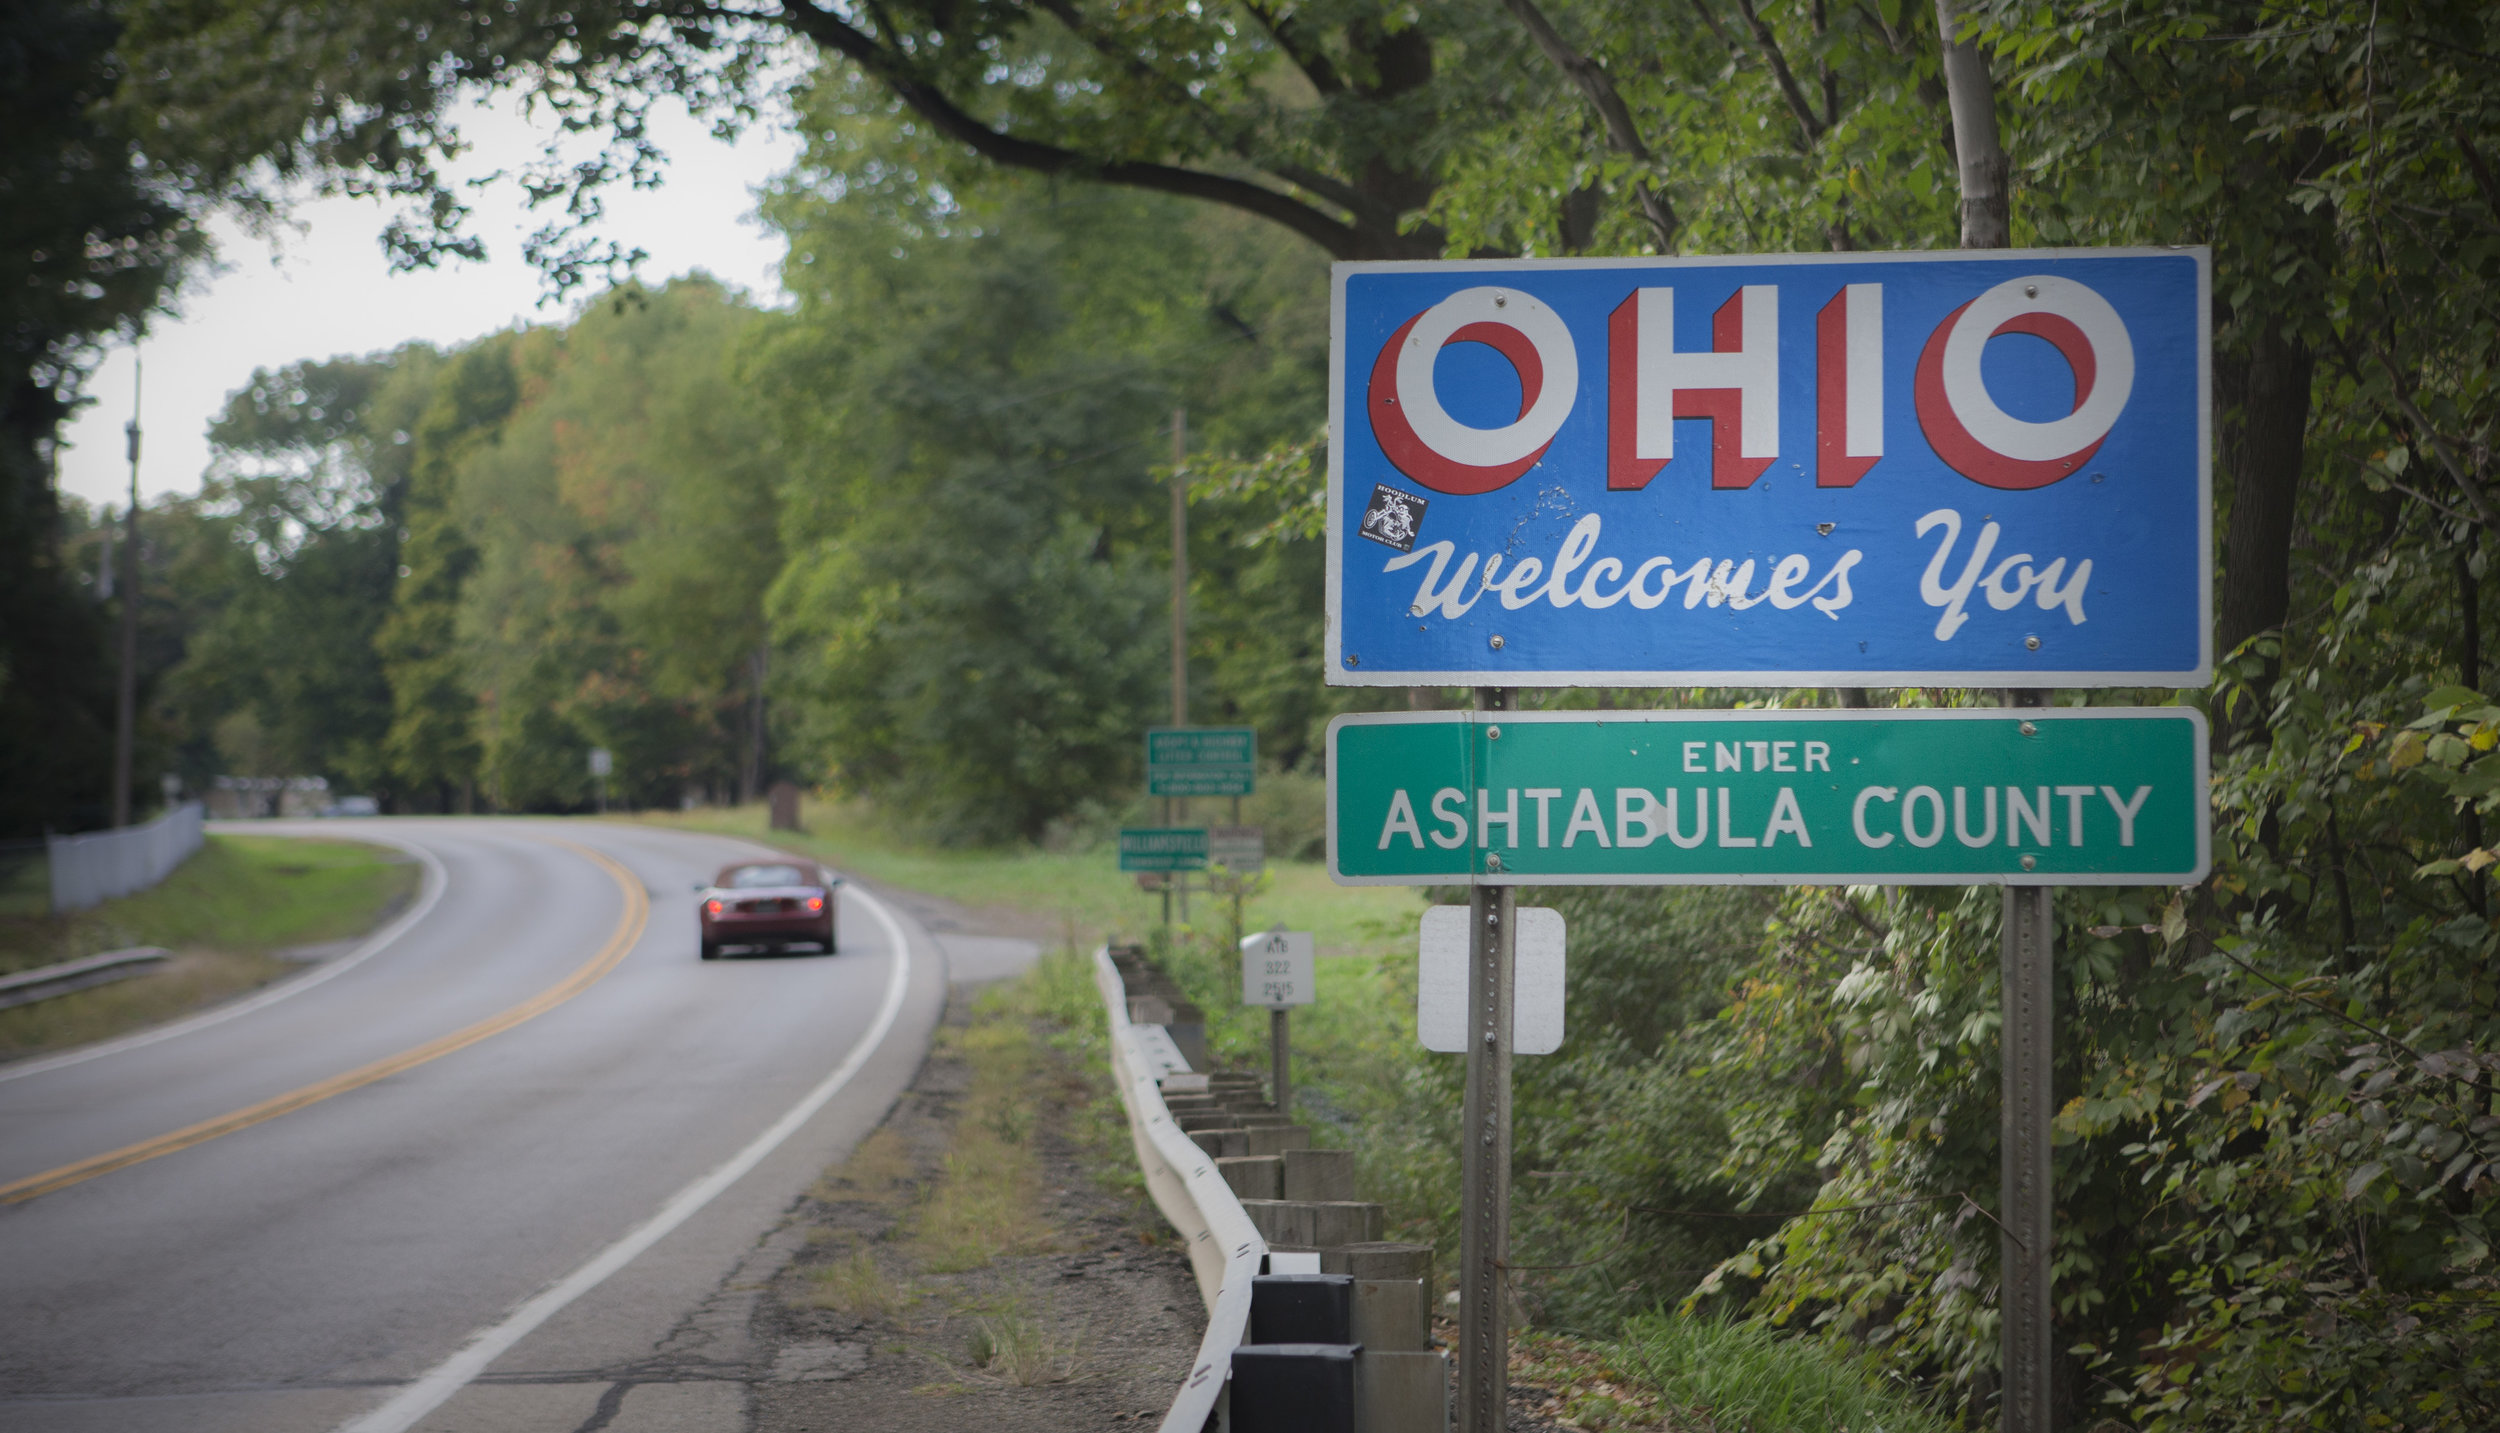 2016.10.02 - Ashtabula County_ Ohio_22.jpg